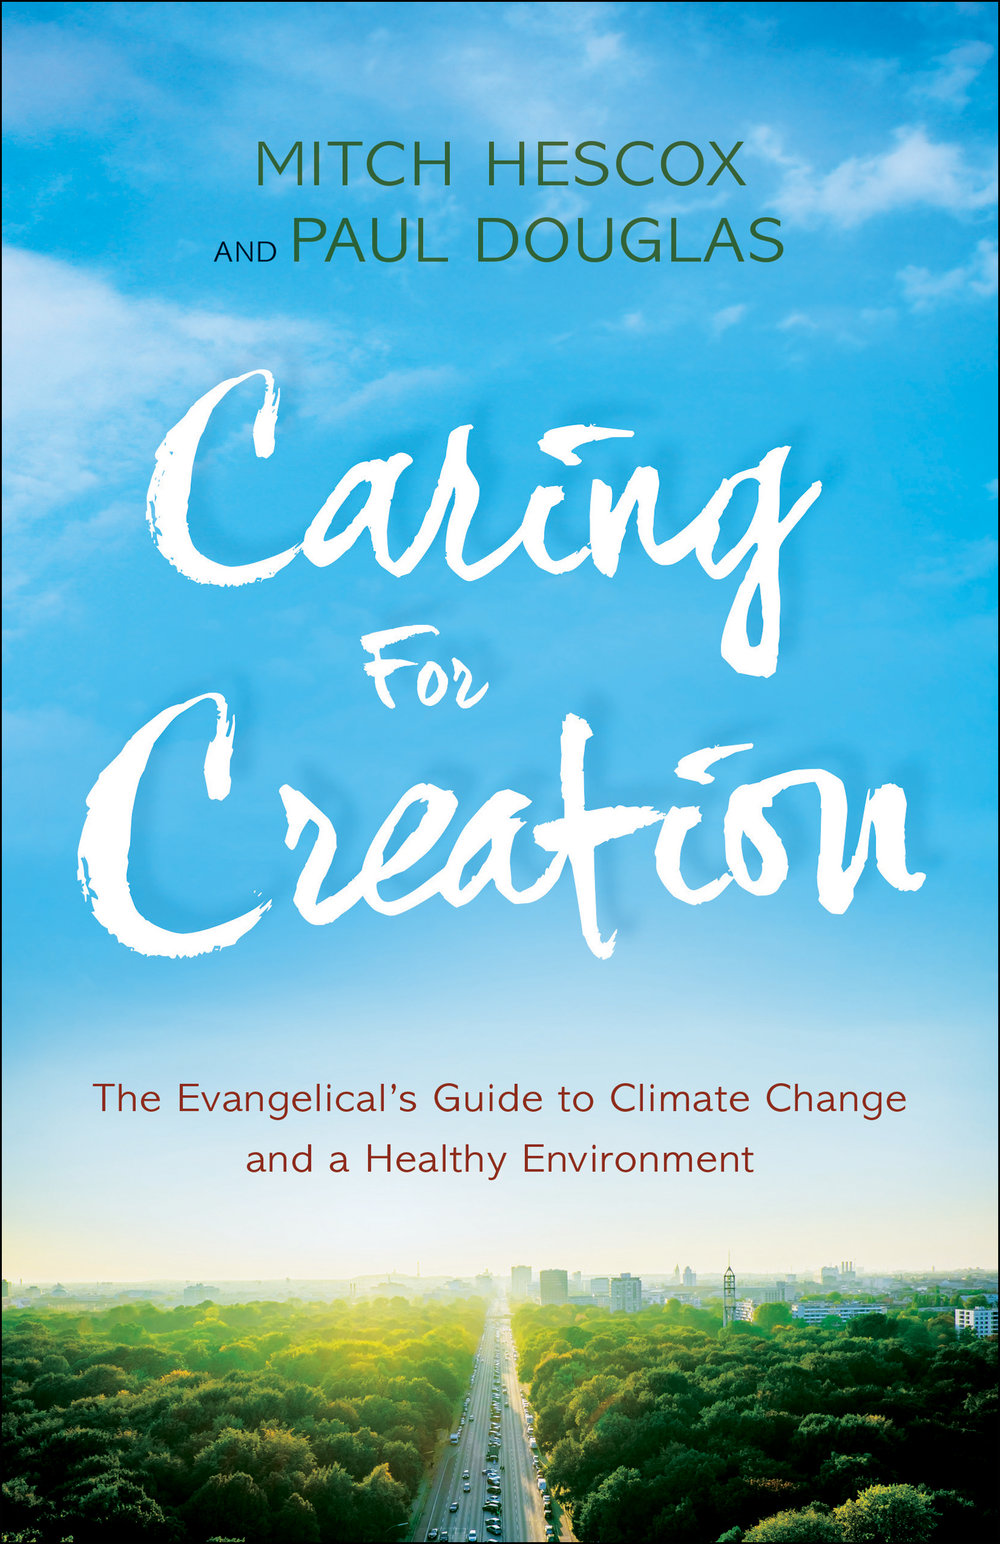 Caring for Creation: The Evangelical's Guide to Climate Change and a Healthy EnvironmentBy Paul Douglas, Mitch Hescox - By Paul Douglas, Mitch HescoxA top read for every Christian, written by C4 board member, Rev. Mitch Hescox & renown meteorologist Paul Douglas. This book cuts to the heart of believers' most pressing questions on climate change such as